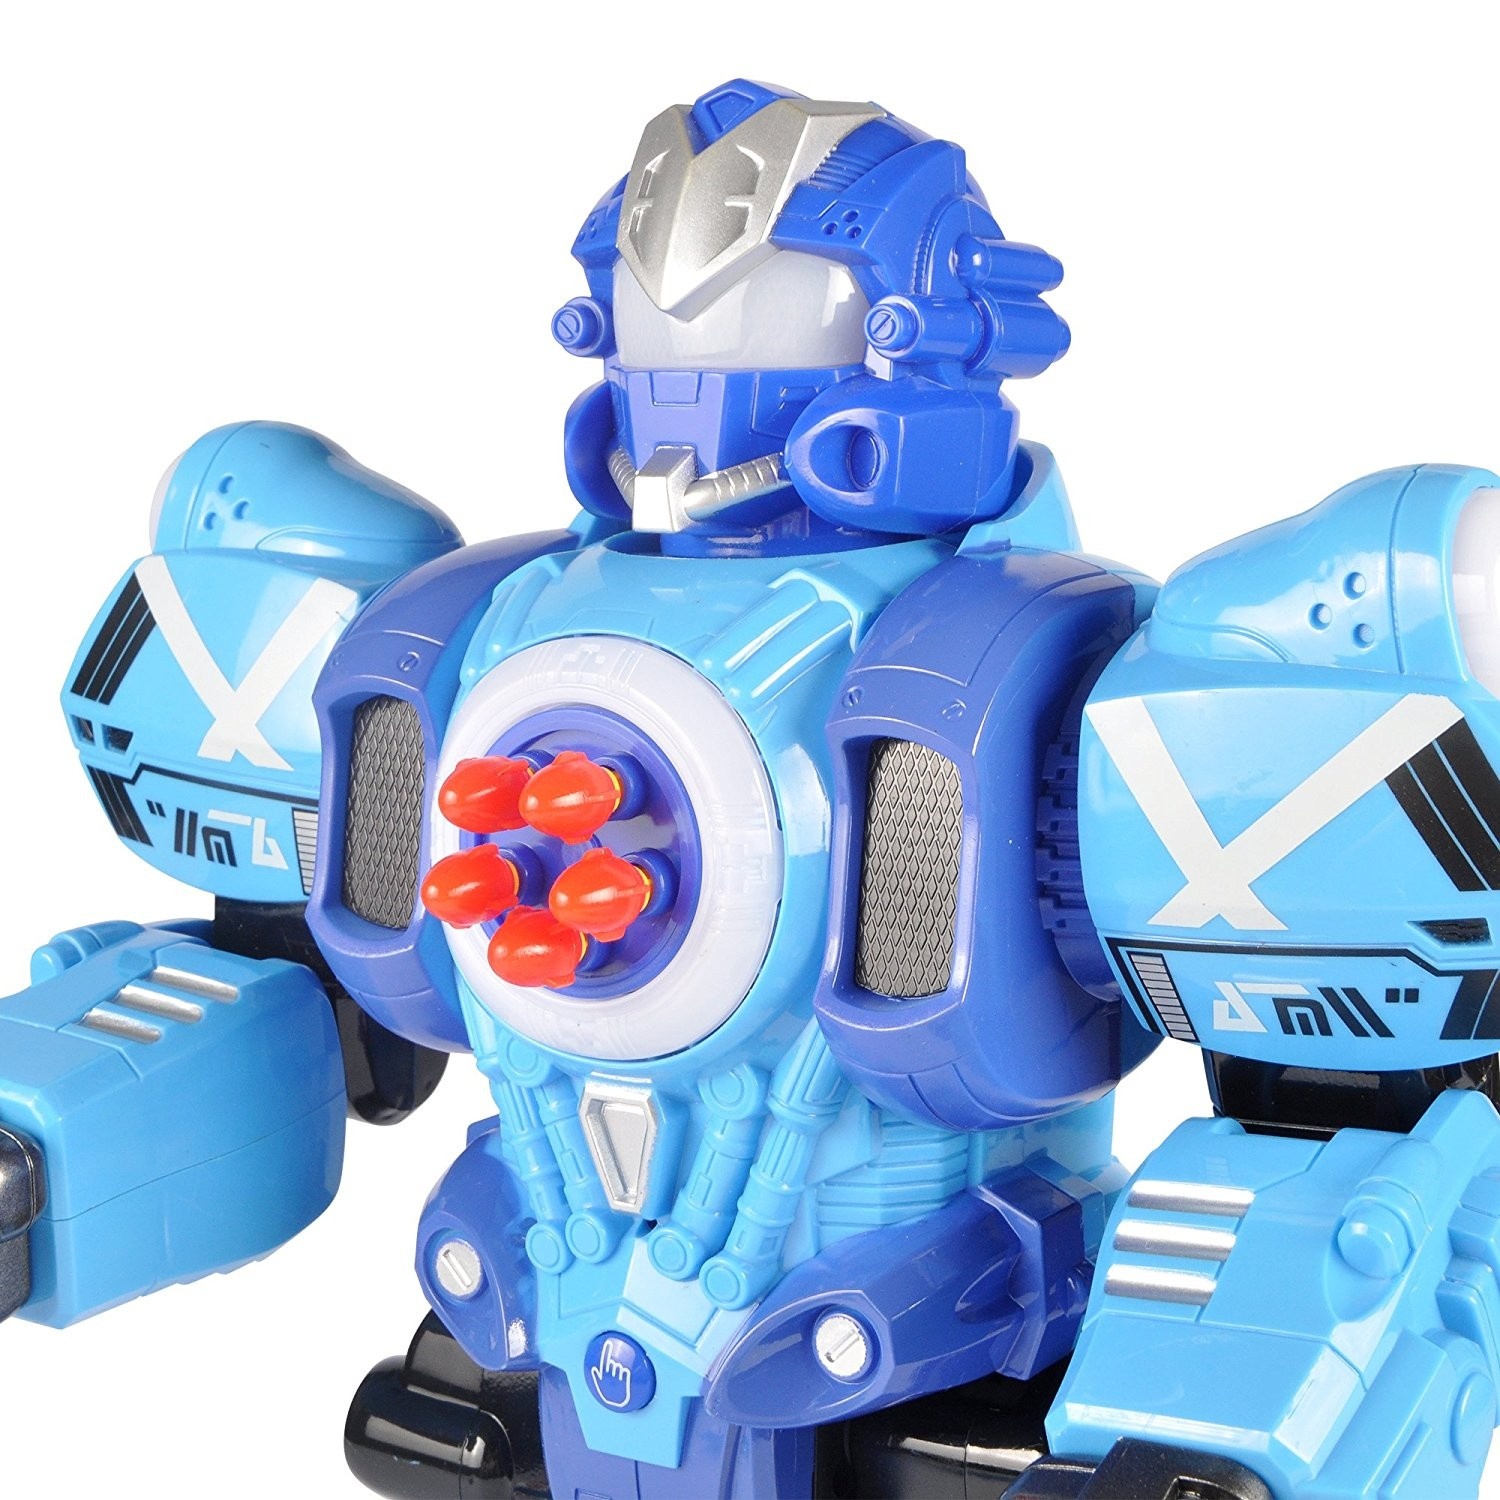 Best Robot Toys For Kids : Best large remote control robot toy for kids rc